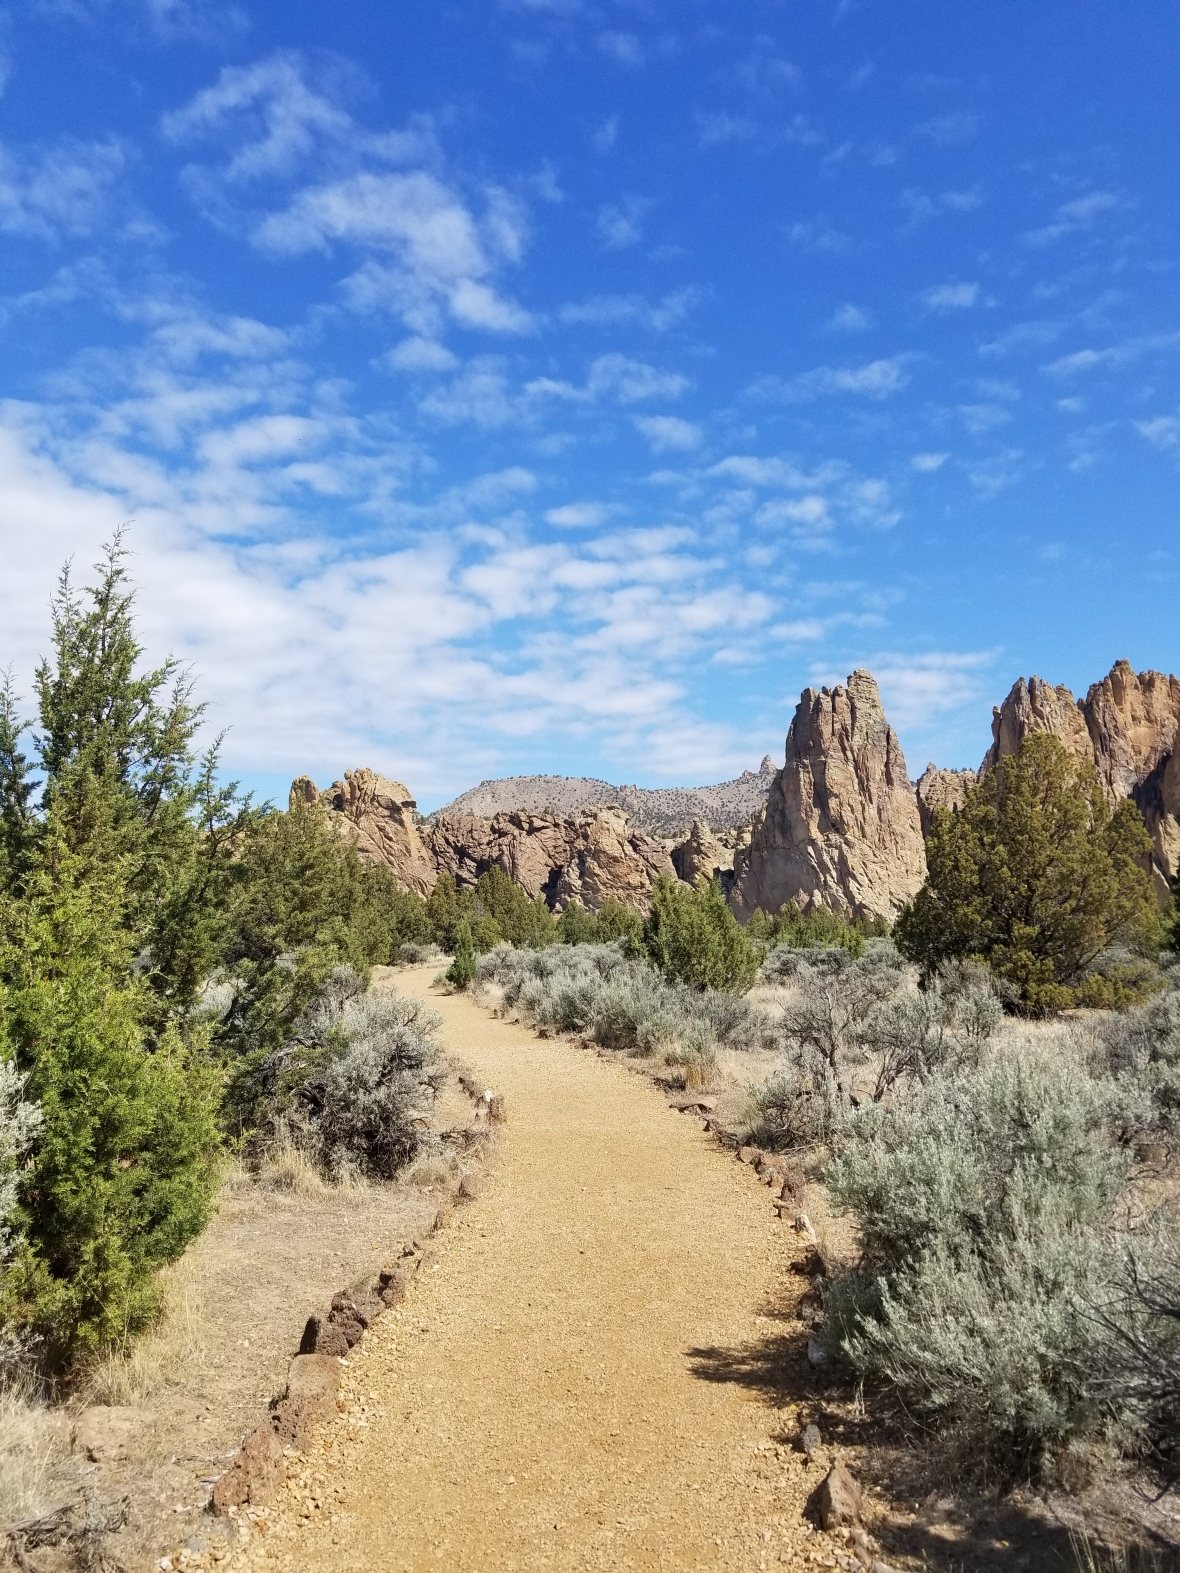 Smith Rocks in Oregon